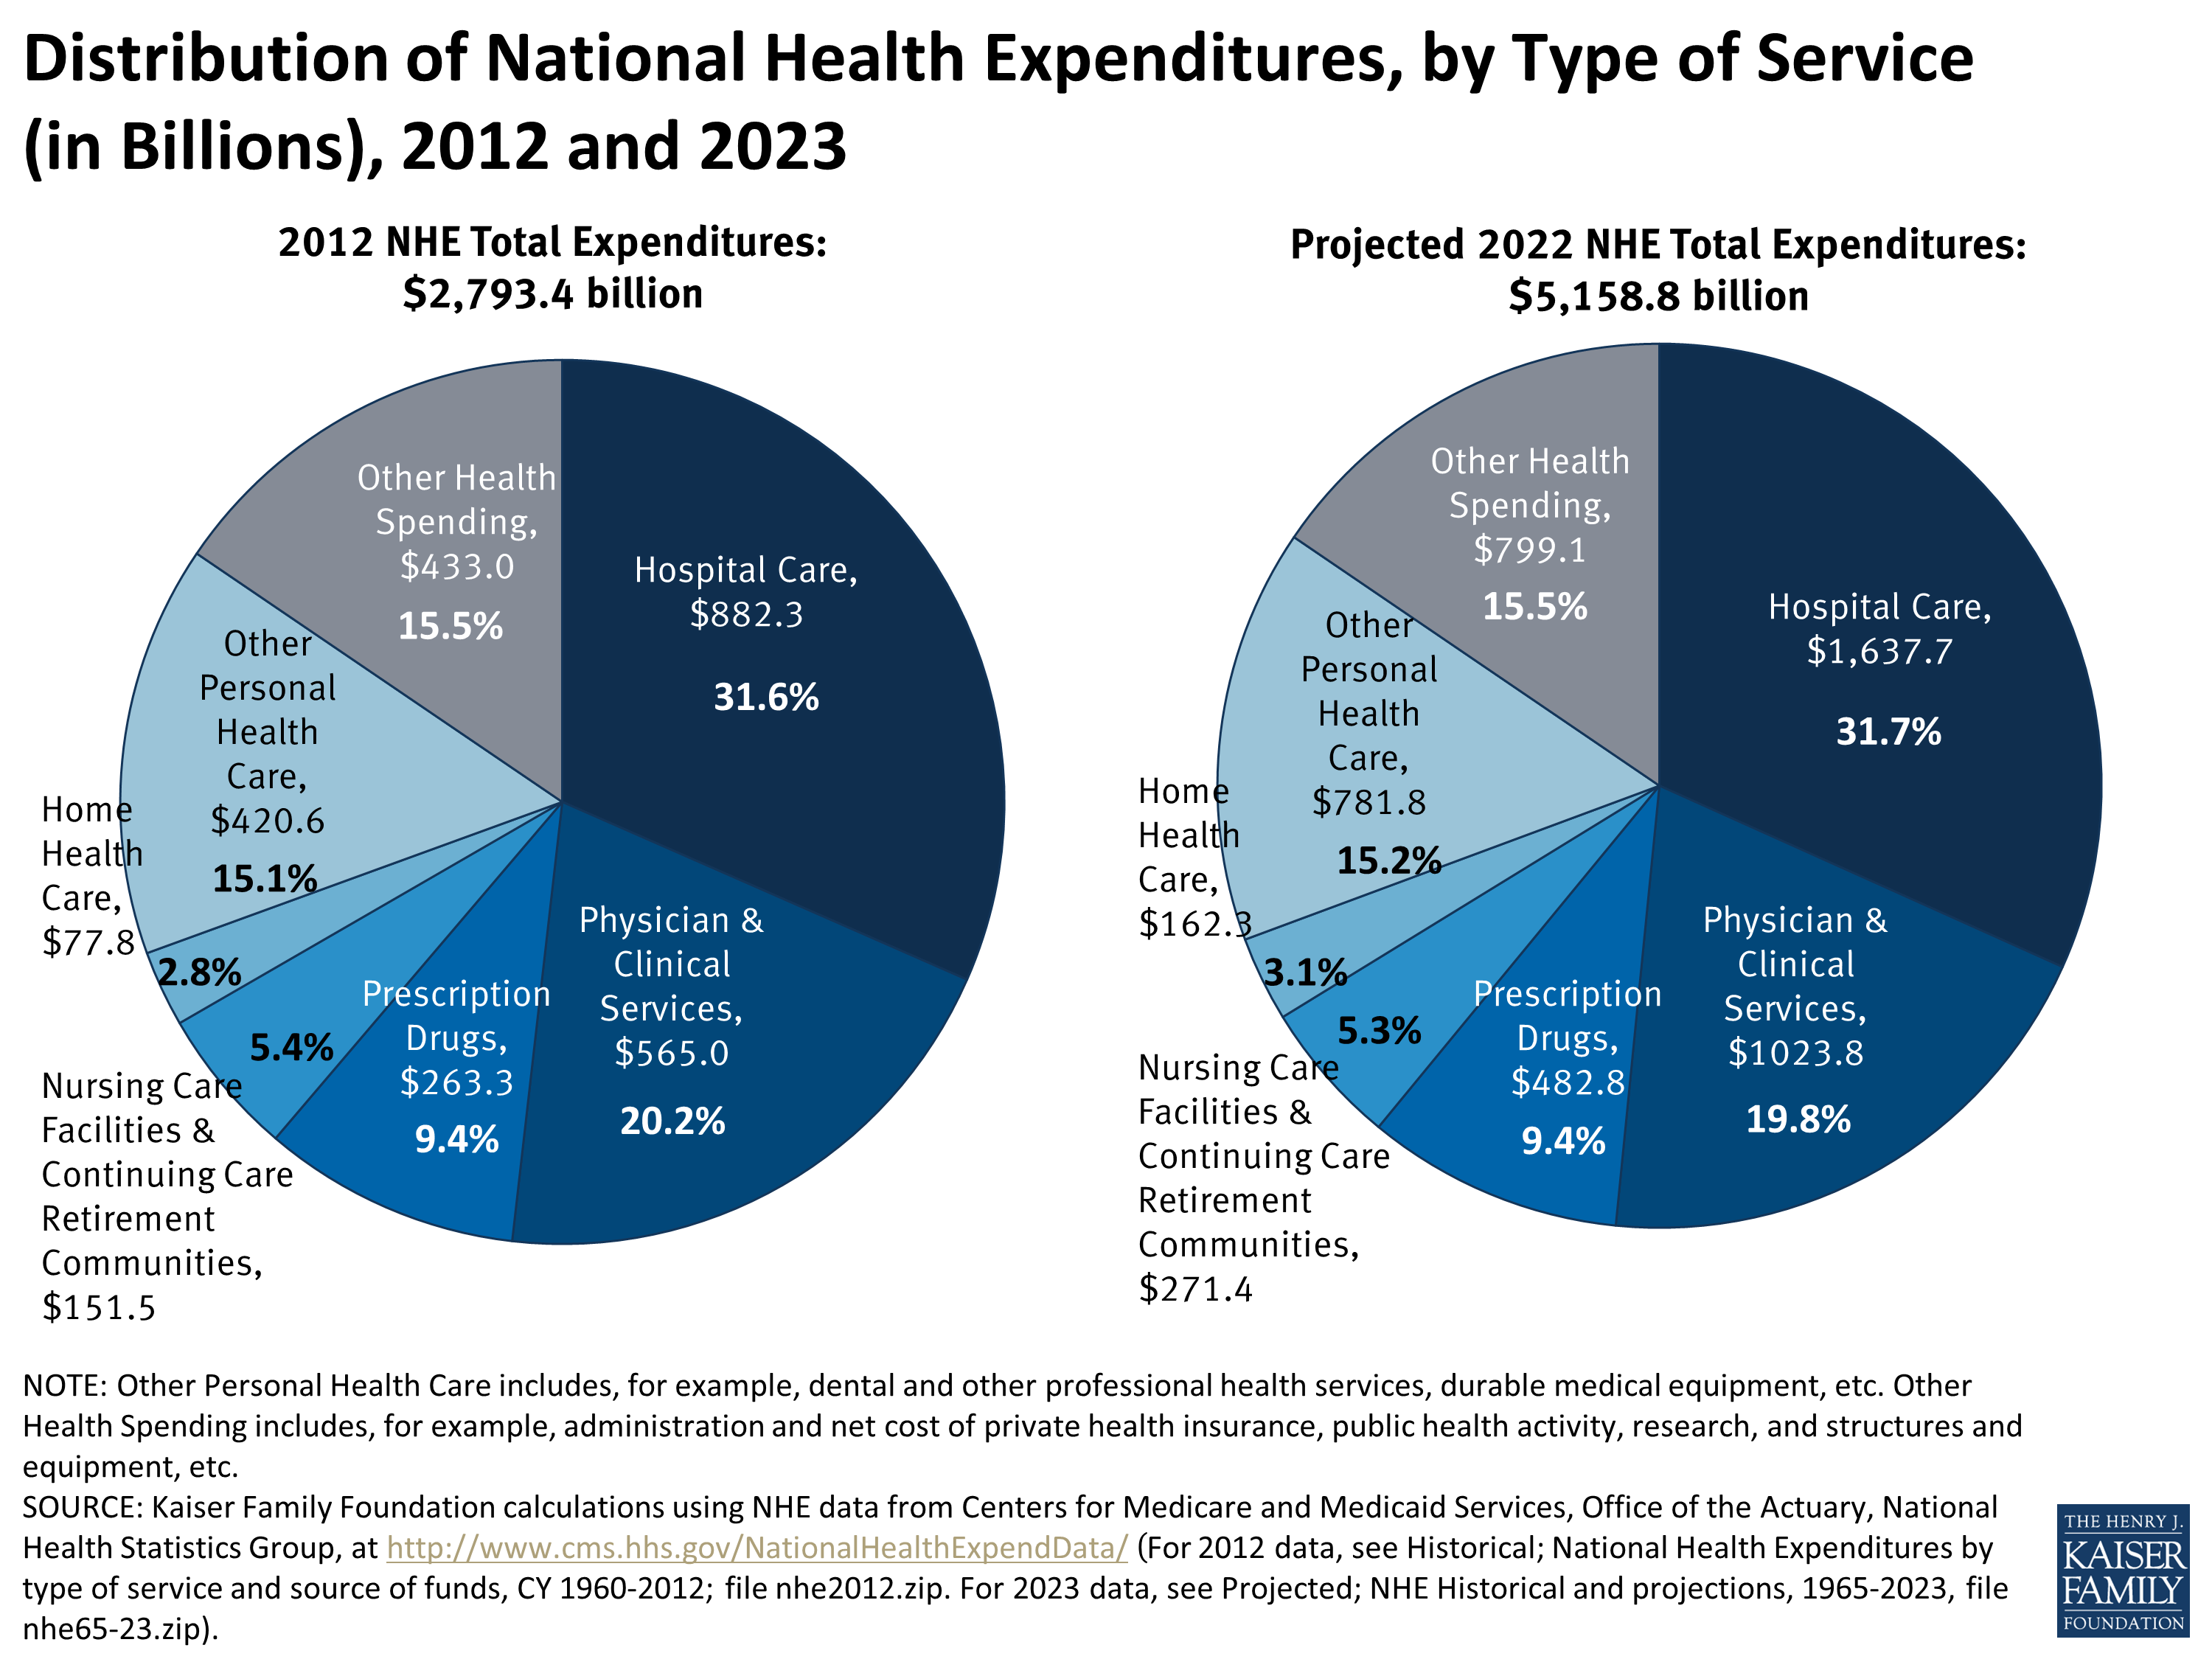 Distribution of National Health Expenditures, by Type of Service (in Billions), 2012 and 2023